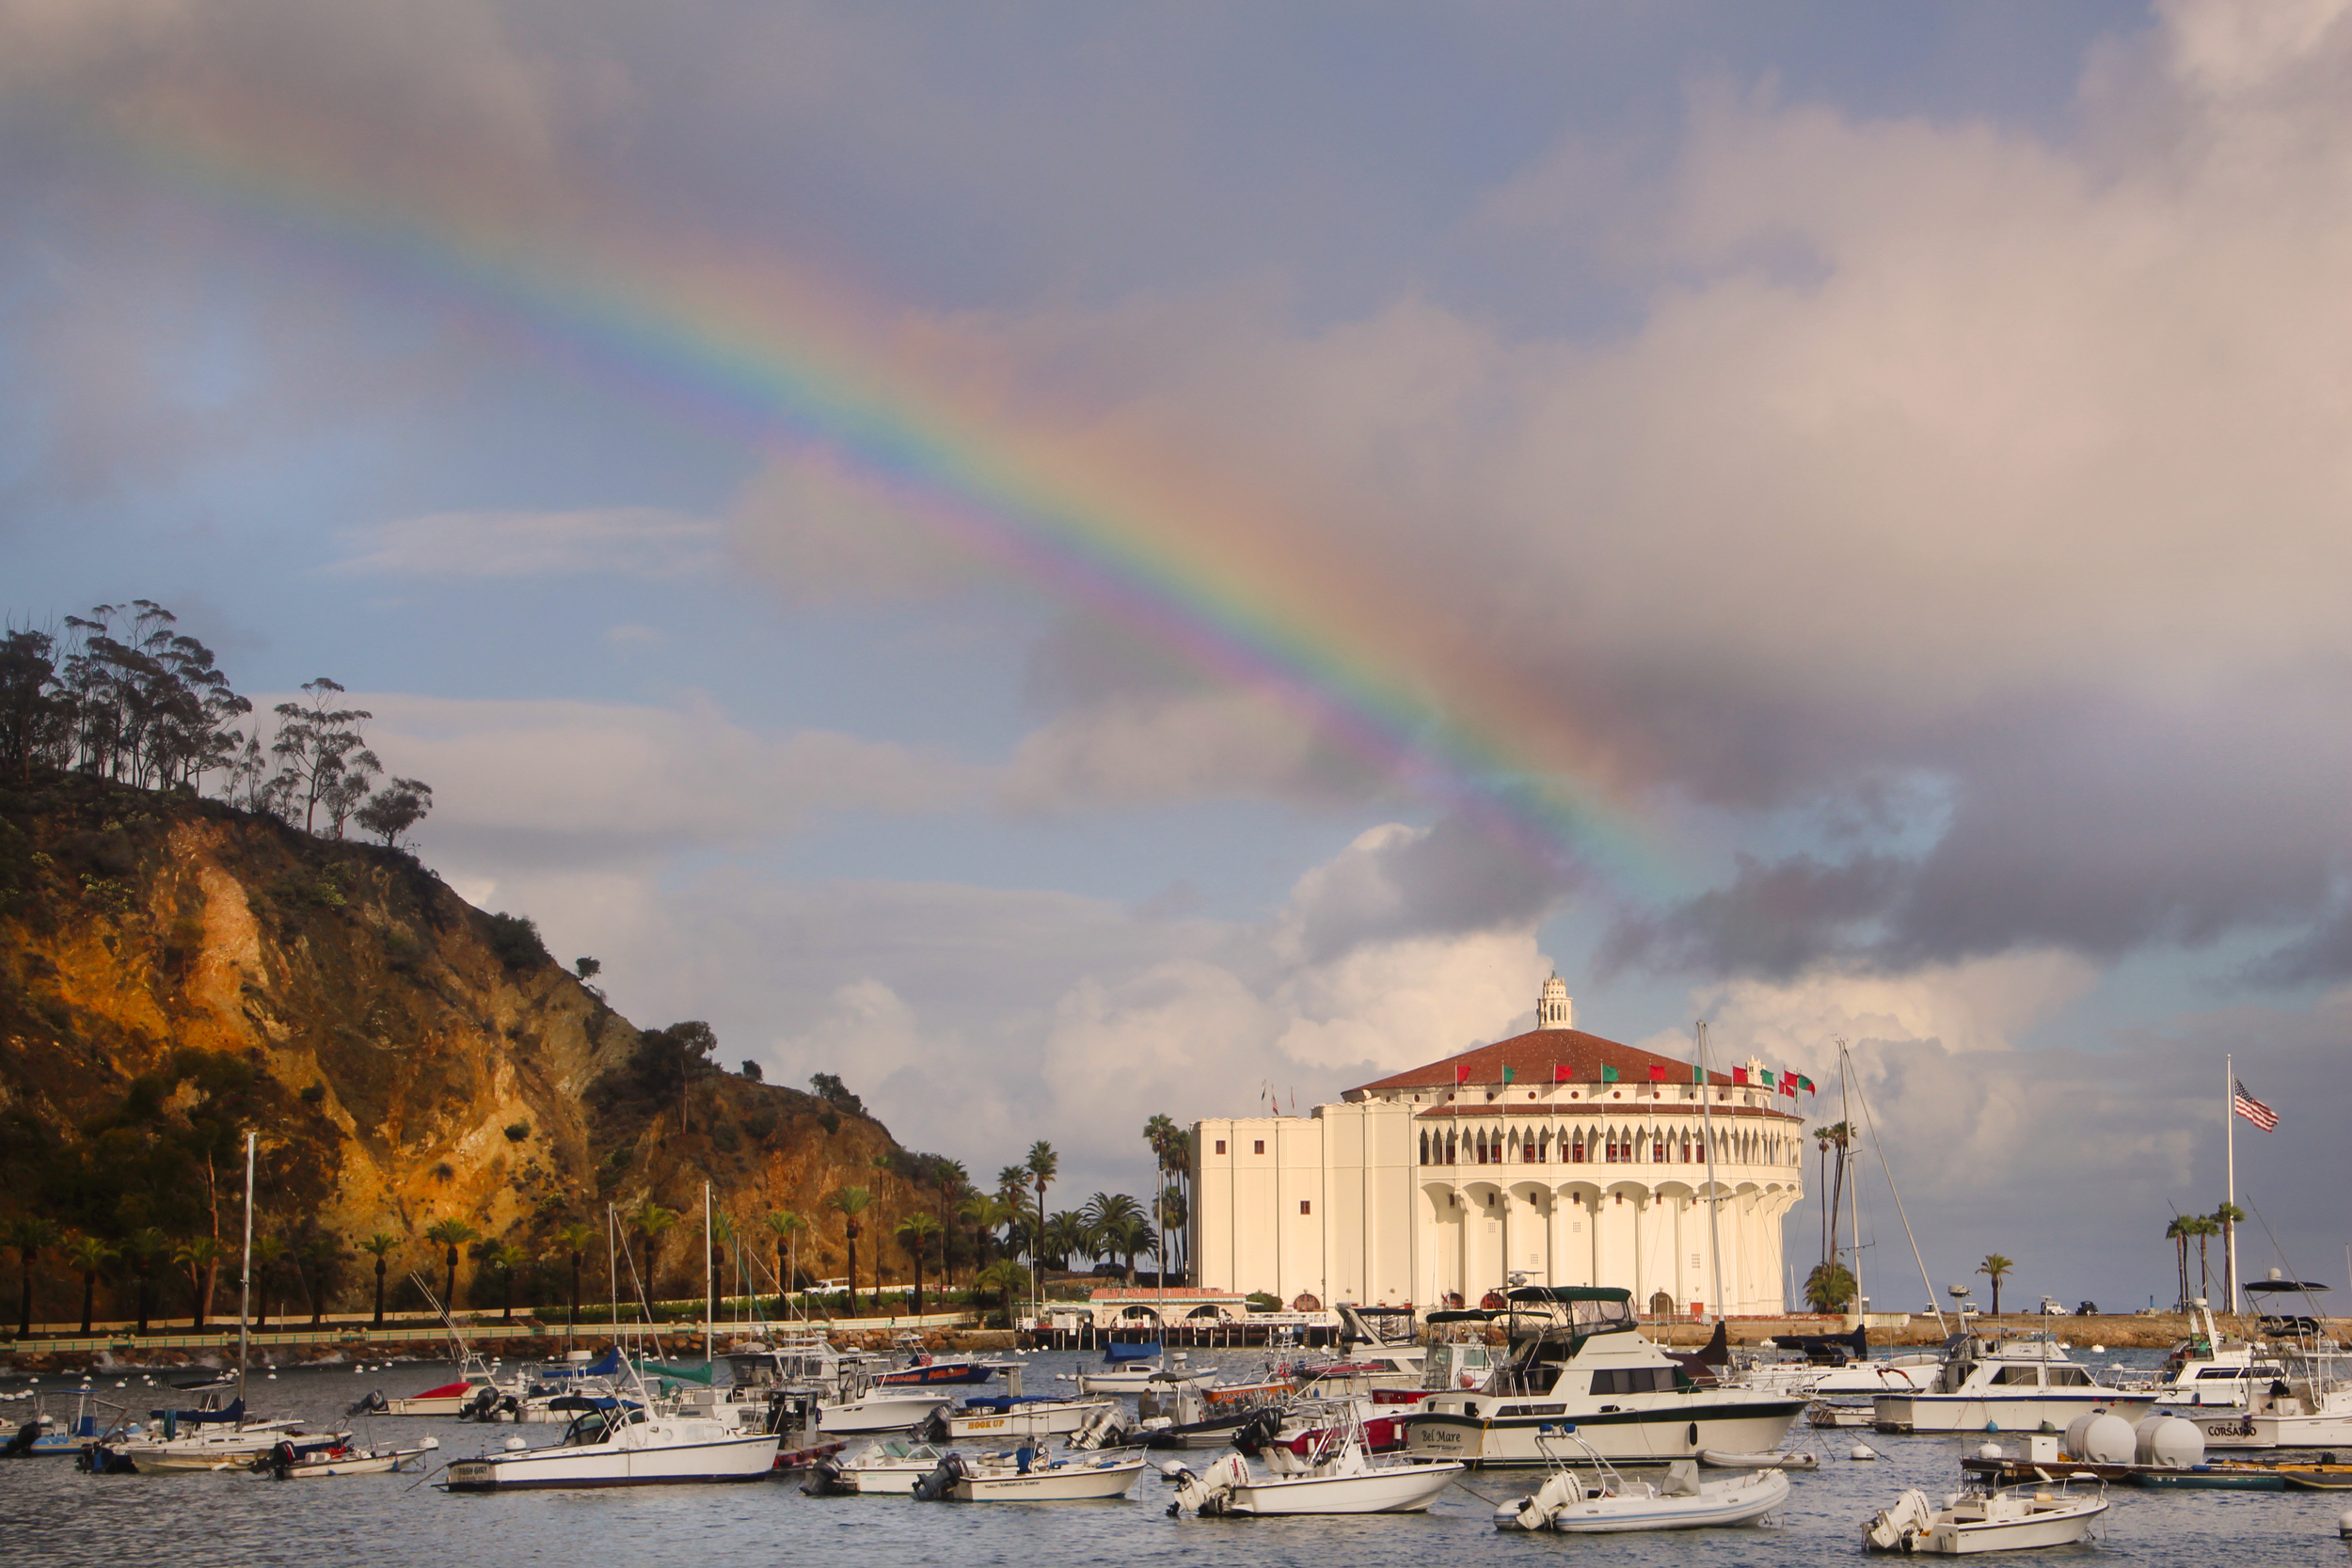 A winter rainbow provides a magical backdrop above the historic Avalon Casino on Catalina Island. Photo:  Joanne DiBona